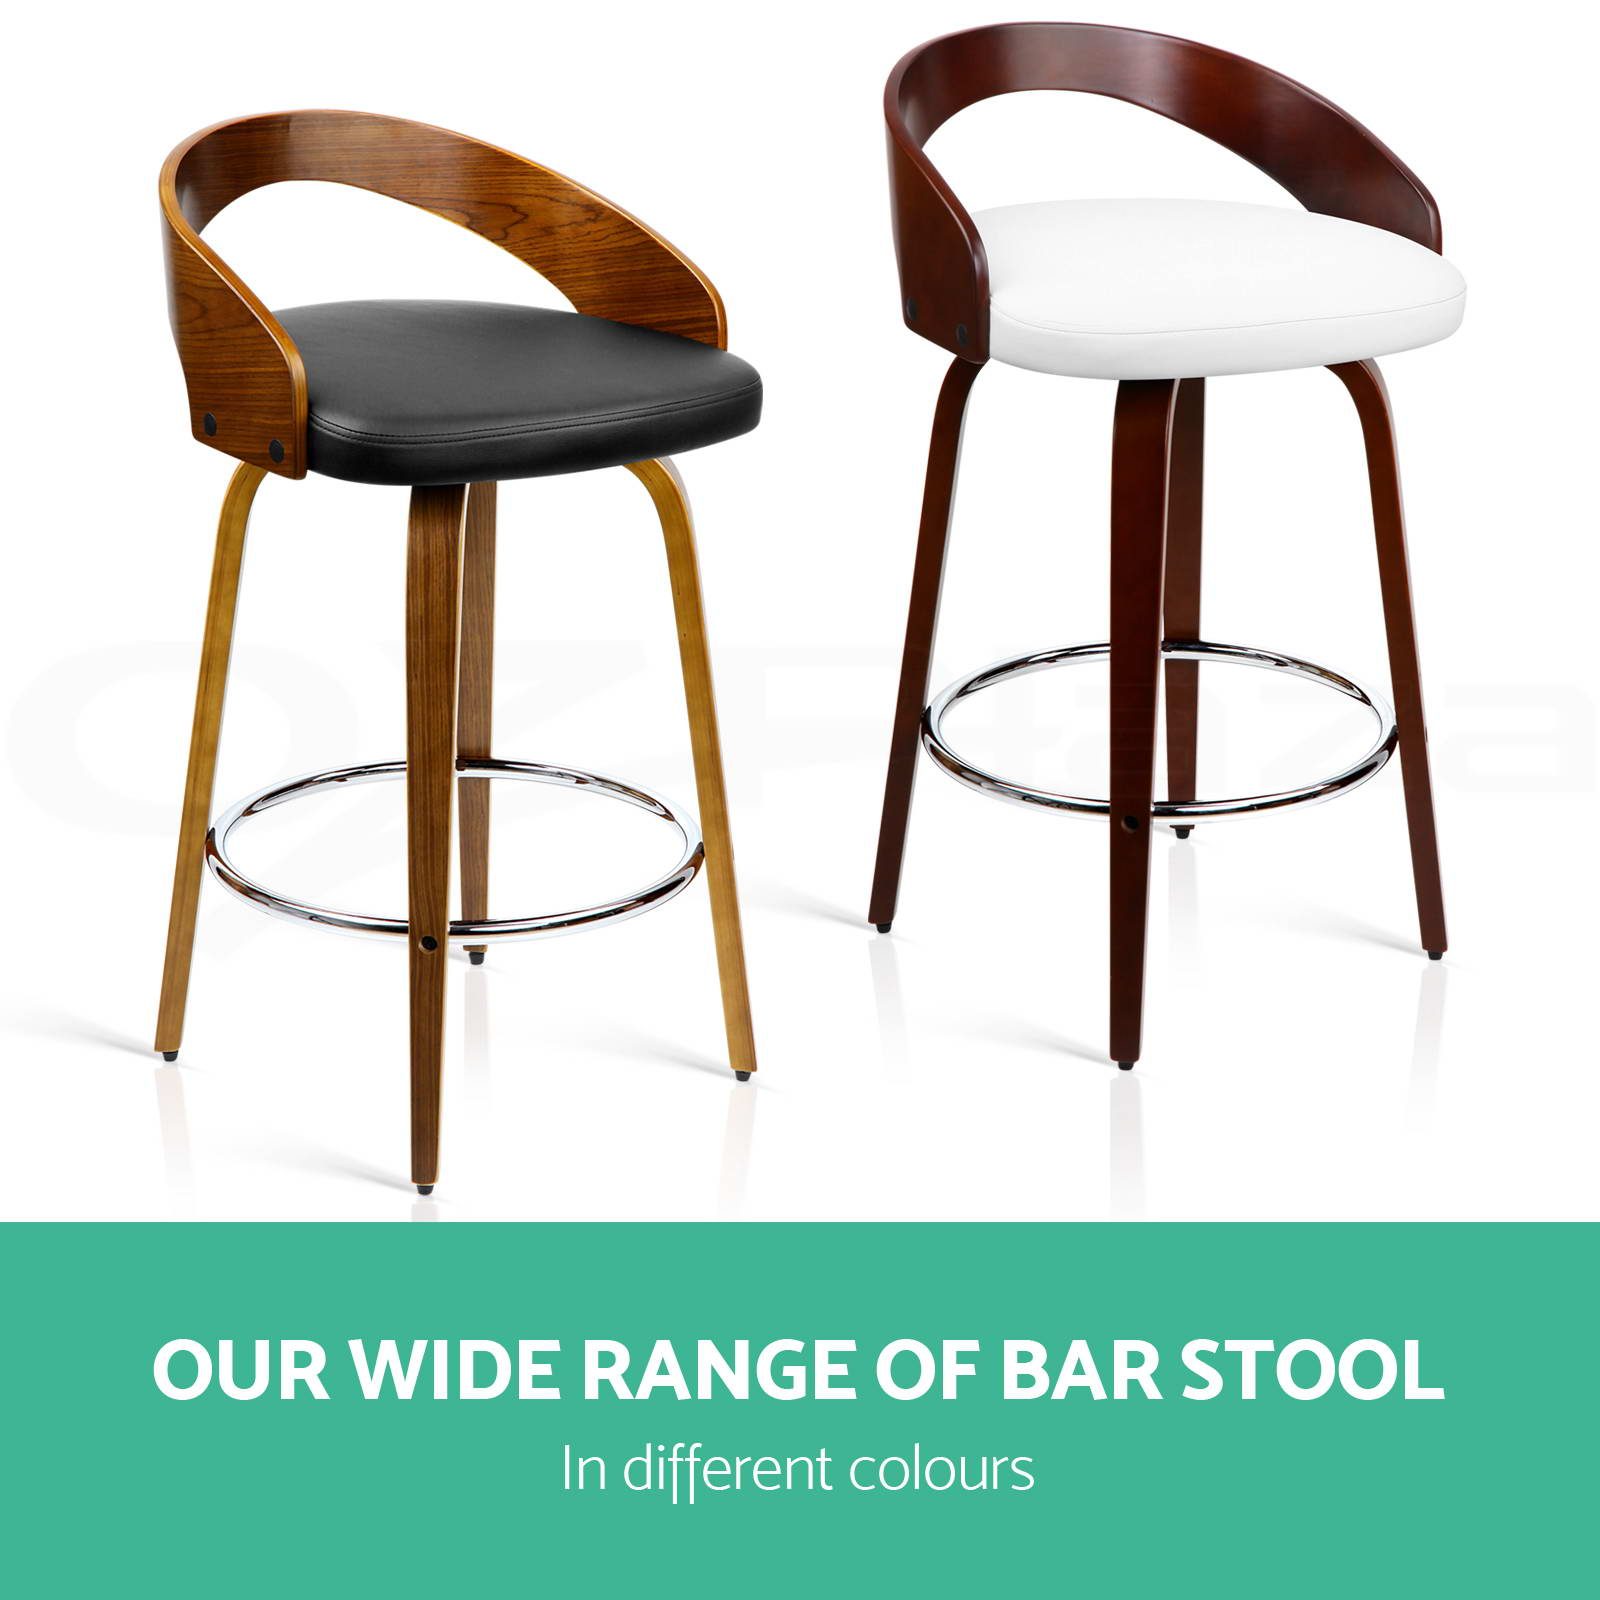 wooden bar stool chairs hickory chair 4x stools swivel barstool kitchen dining